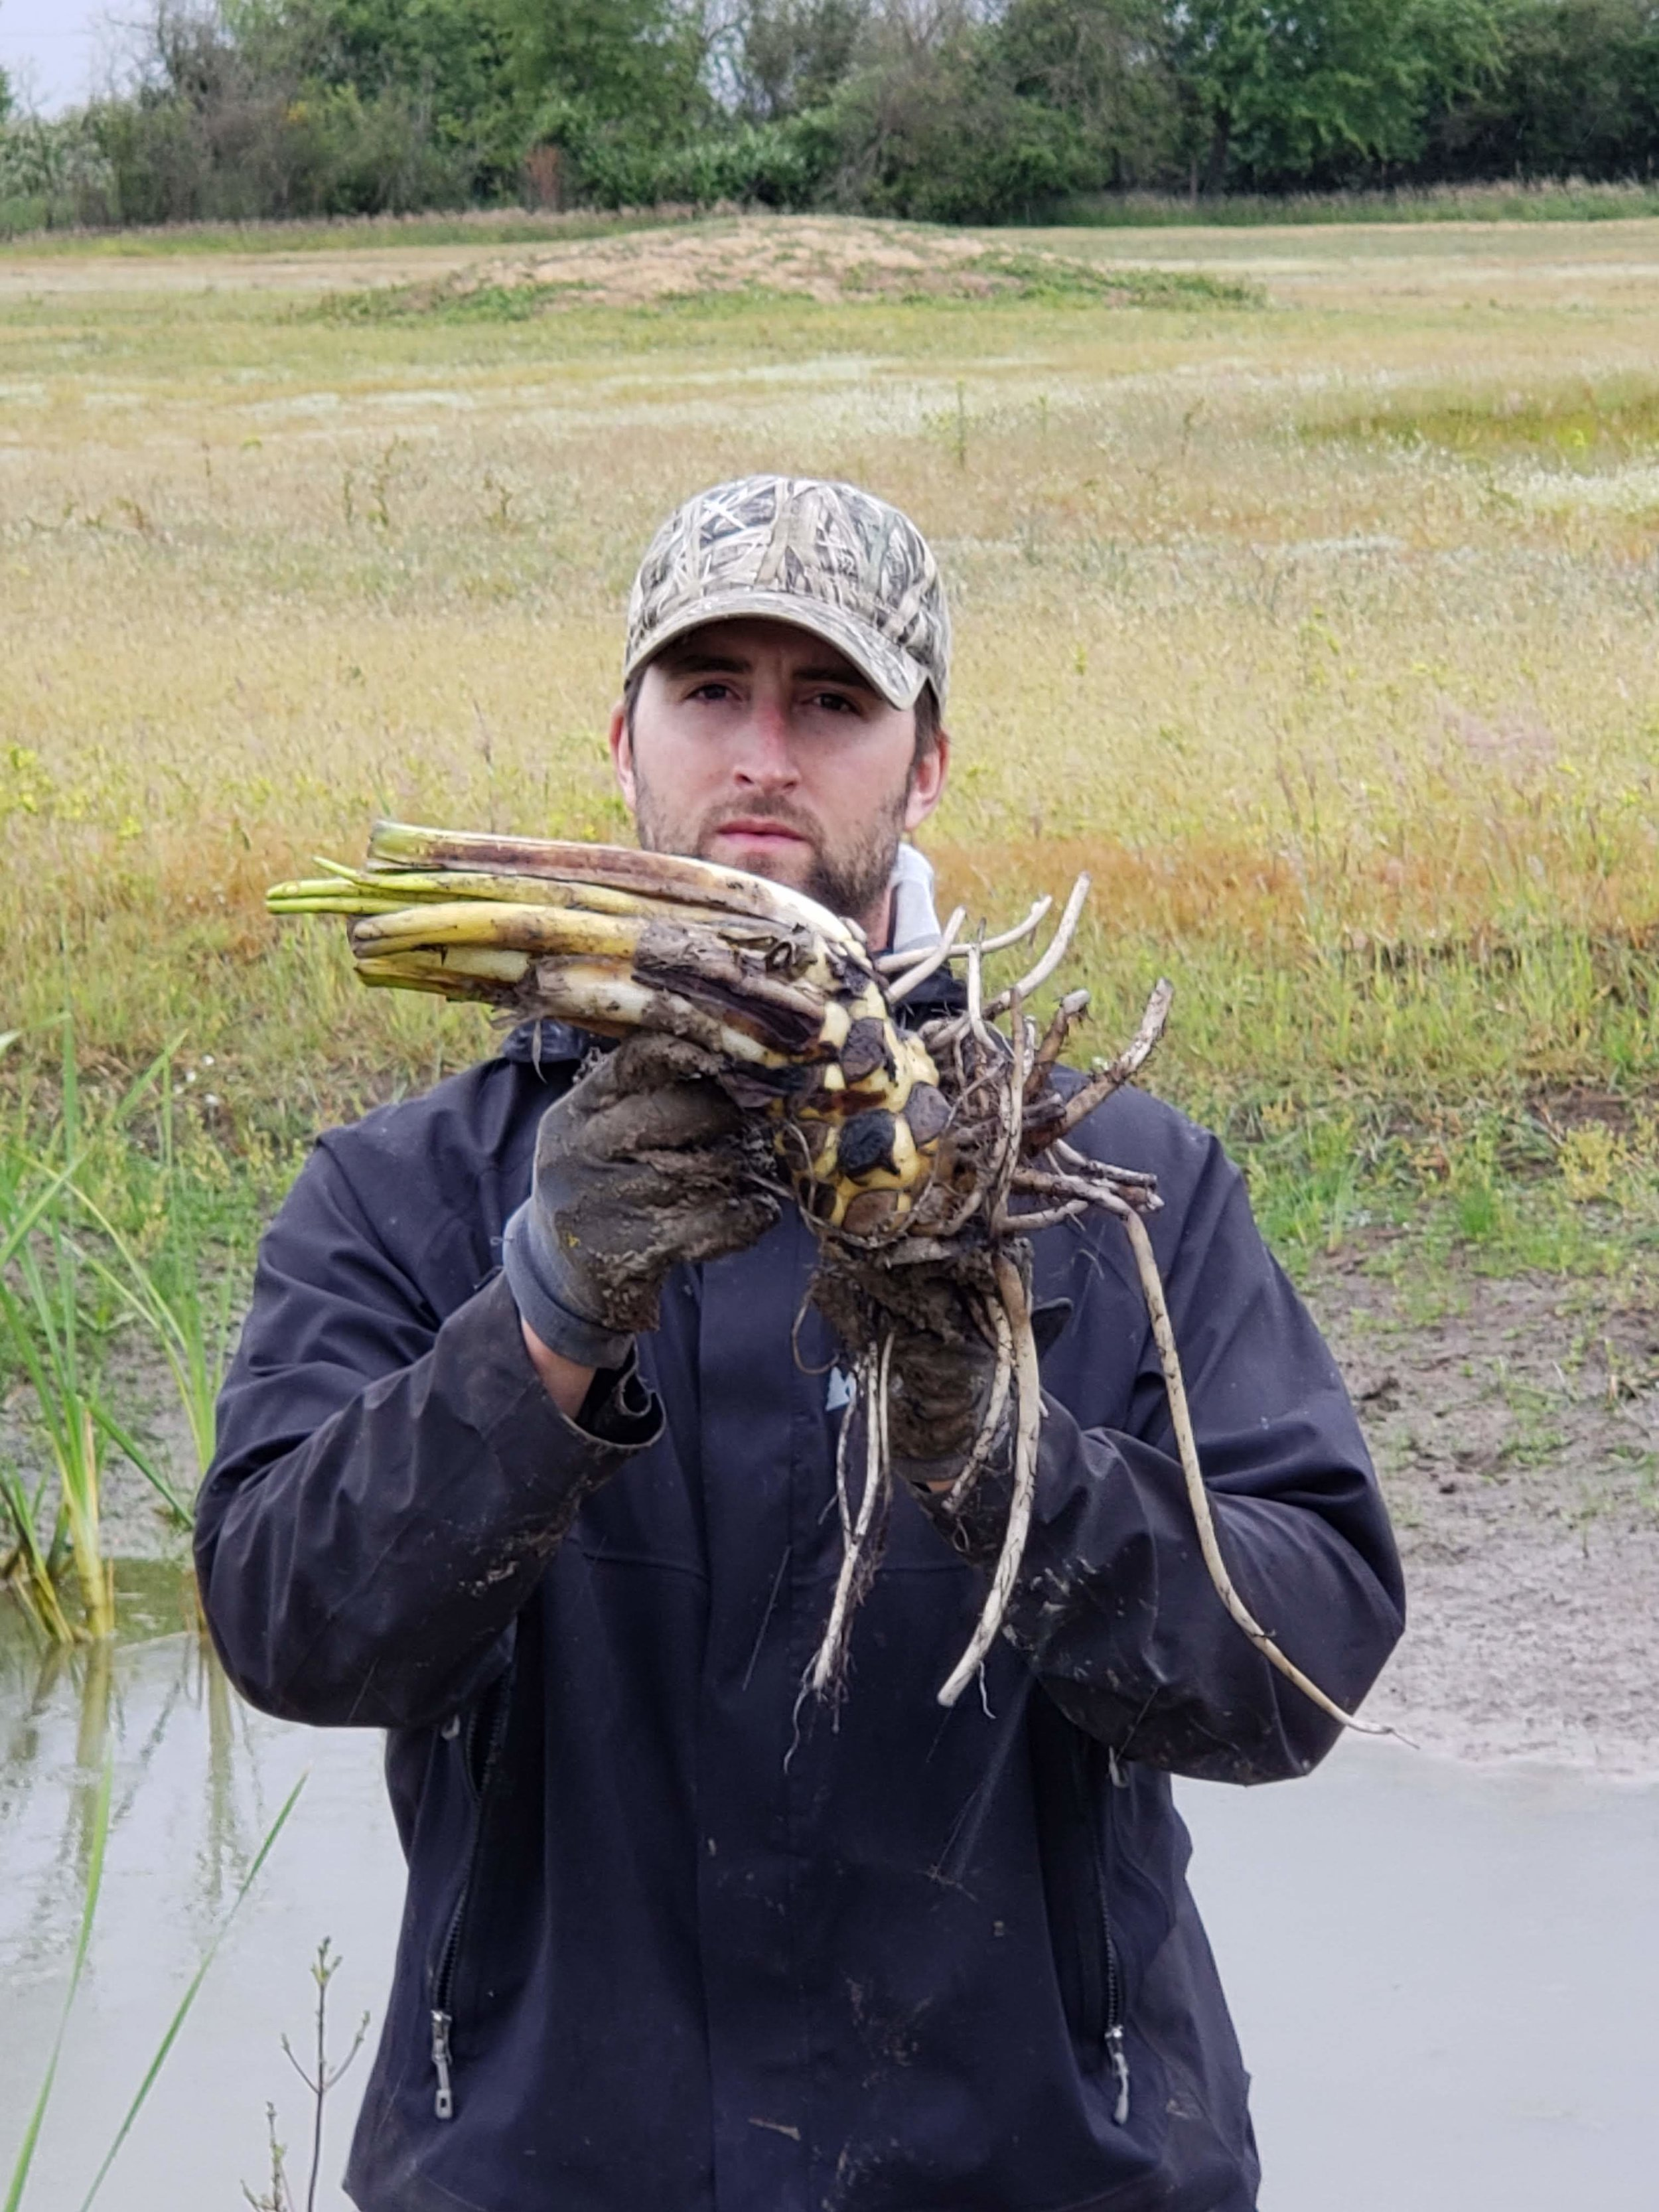 Luke holding Yellow pond lily, ( Nuphar lutea)